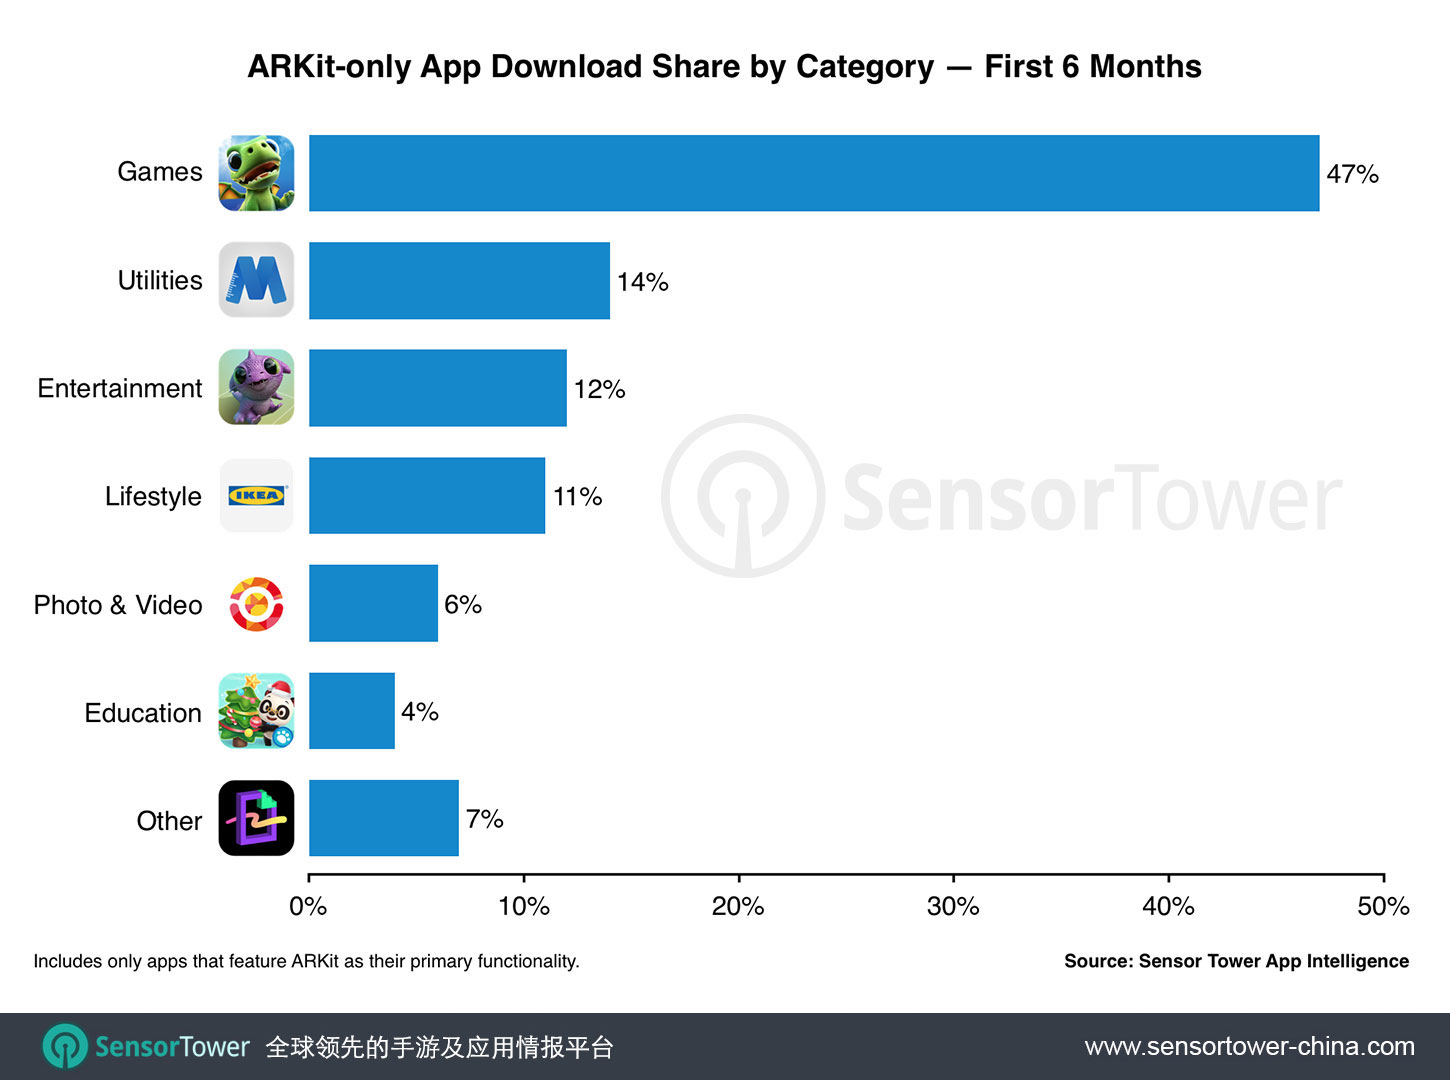 Chart showing category share of all ARKit-only app downloads from the App Store worldwide since September 2017 CN  - arkit apps by category six months cn - 亮相半年后,全面基于ARKit技术而开发的App全球下载量超过1300万次,几乎一半来自游戏